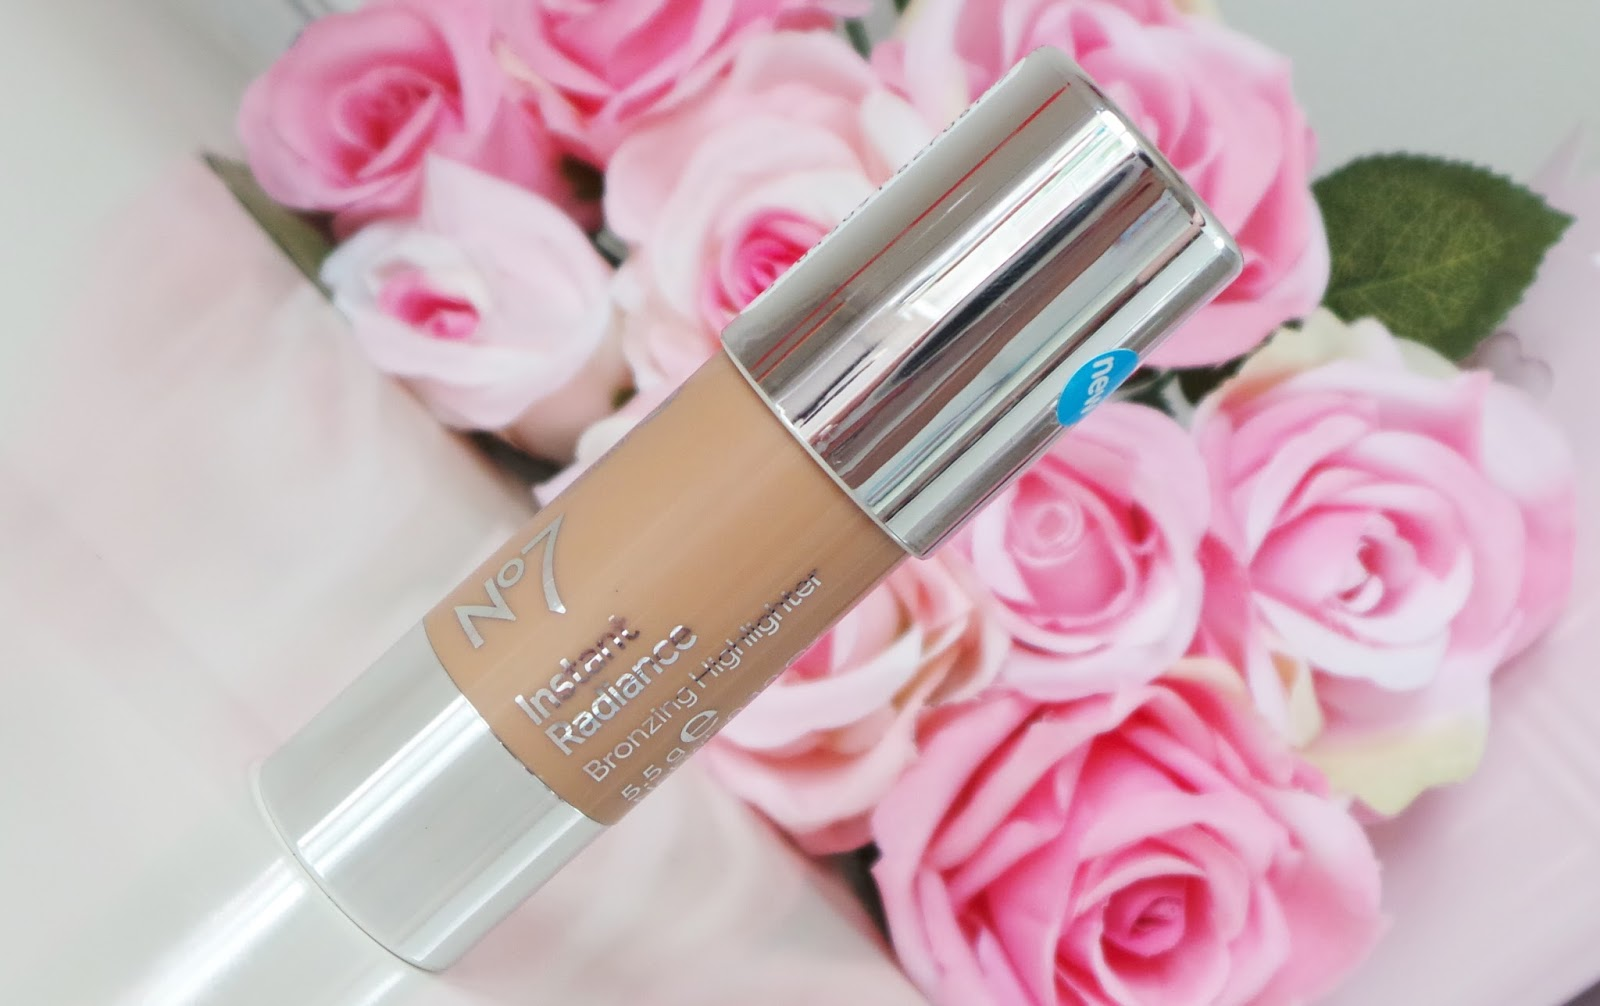 no7 instant radiance bronzing highlighter review no7 summer collection, no7 at boots, no7 cosmetics, no7 review, no7 make up, no7 summer, no7 nail polish, beauty blog, beauty blogger, bblogger, ukbeautyblog, ukbeautyblogger,